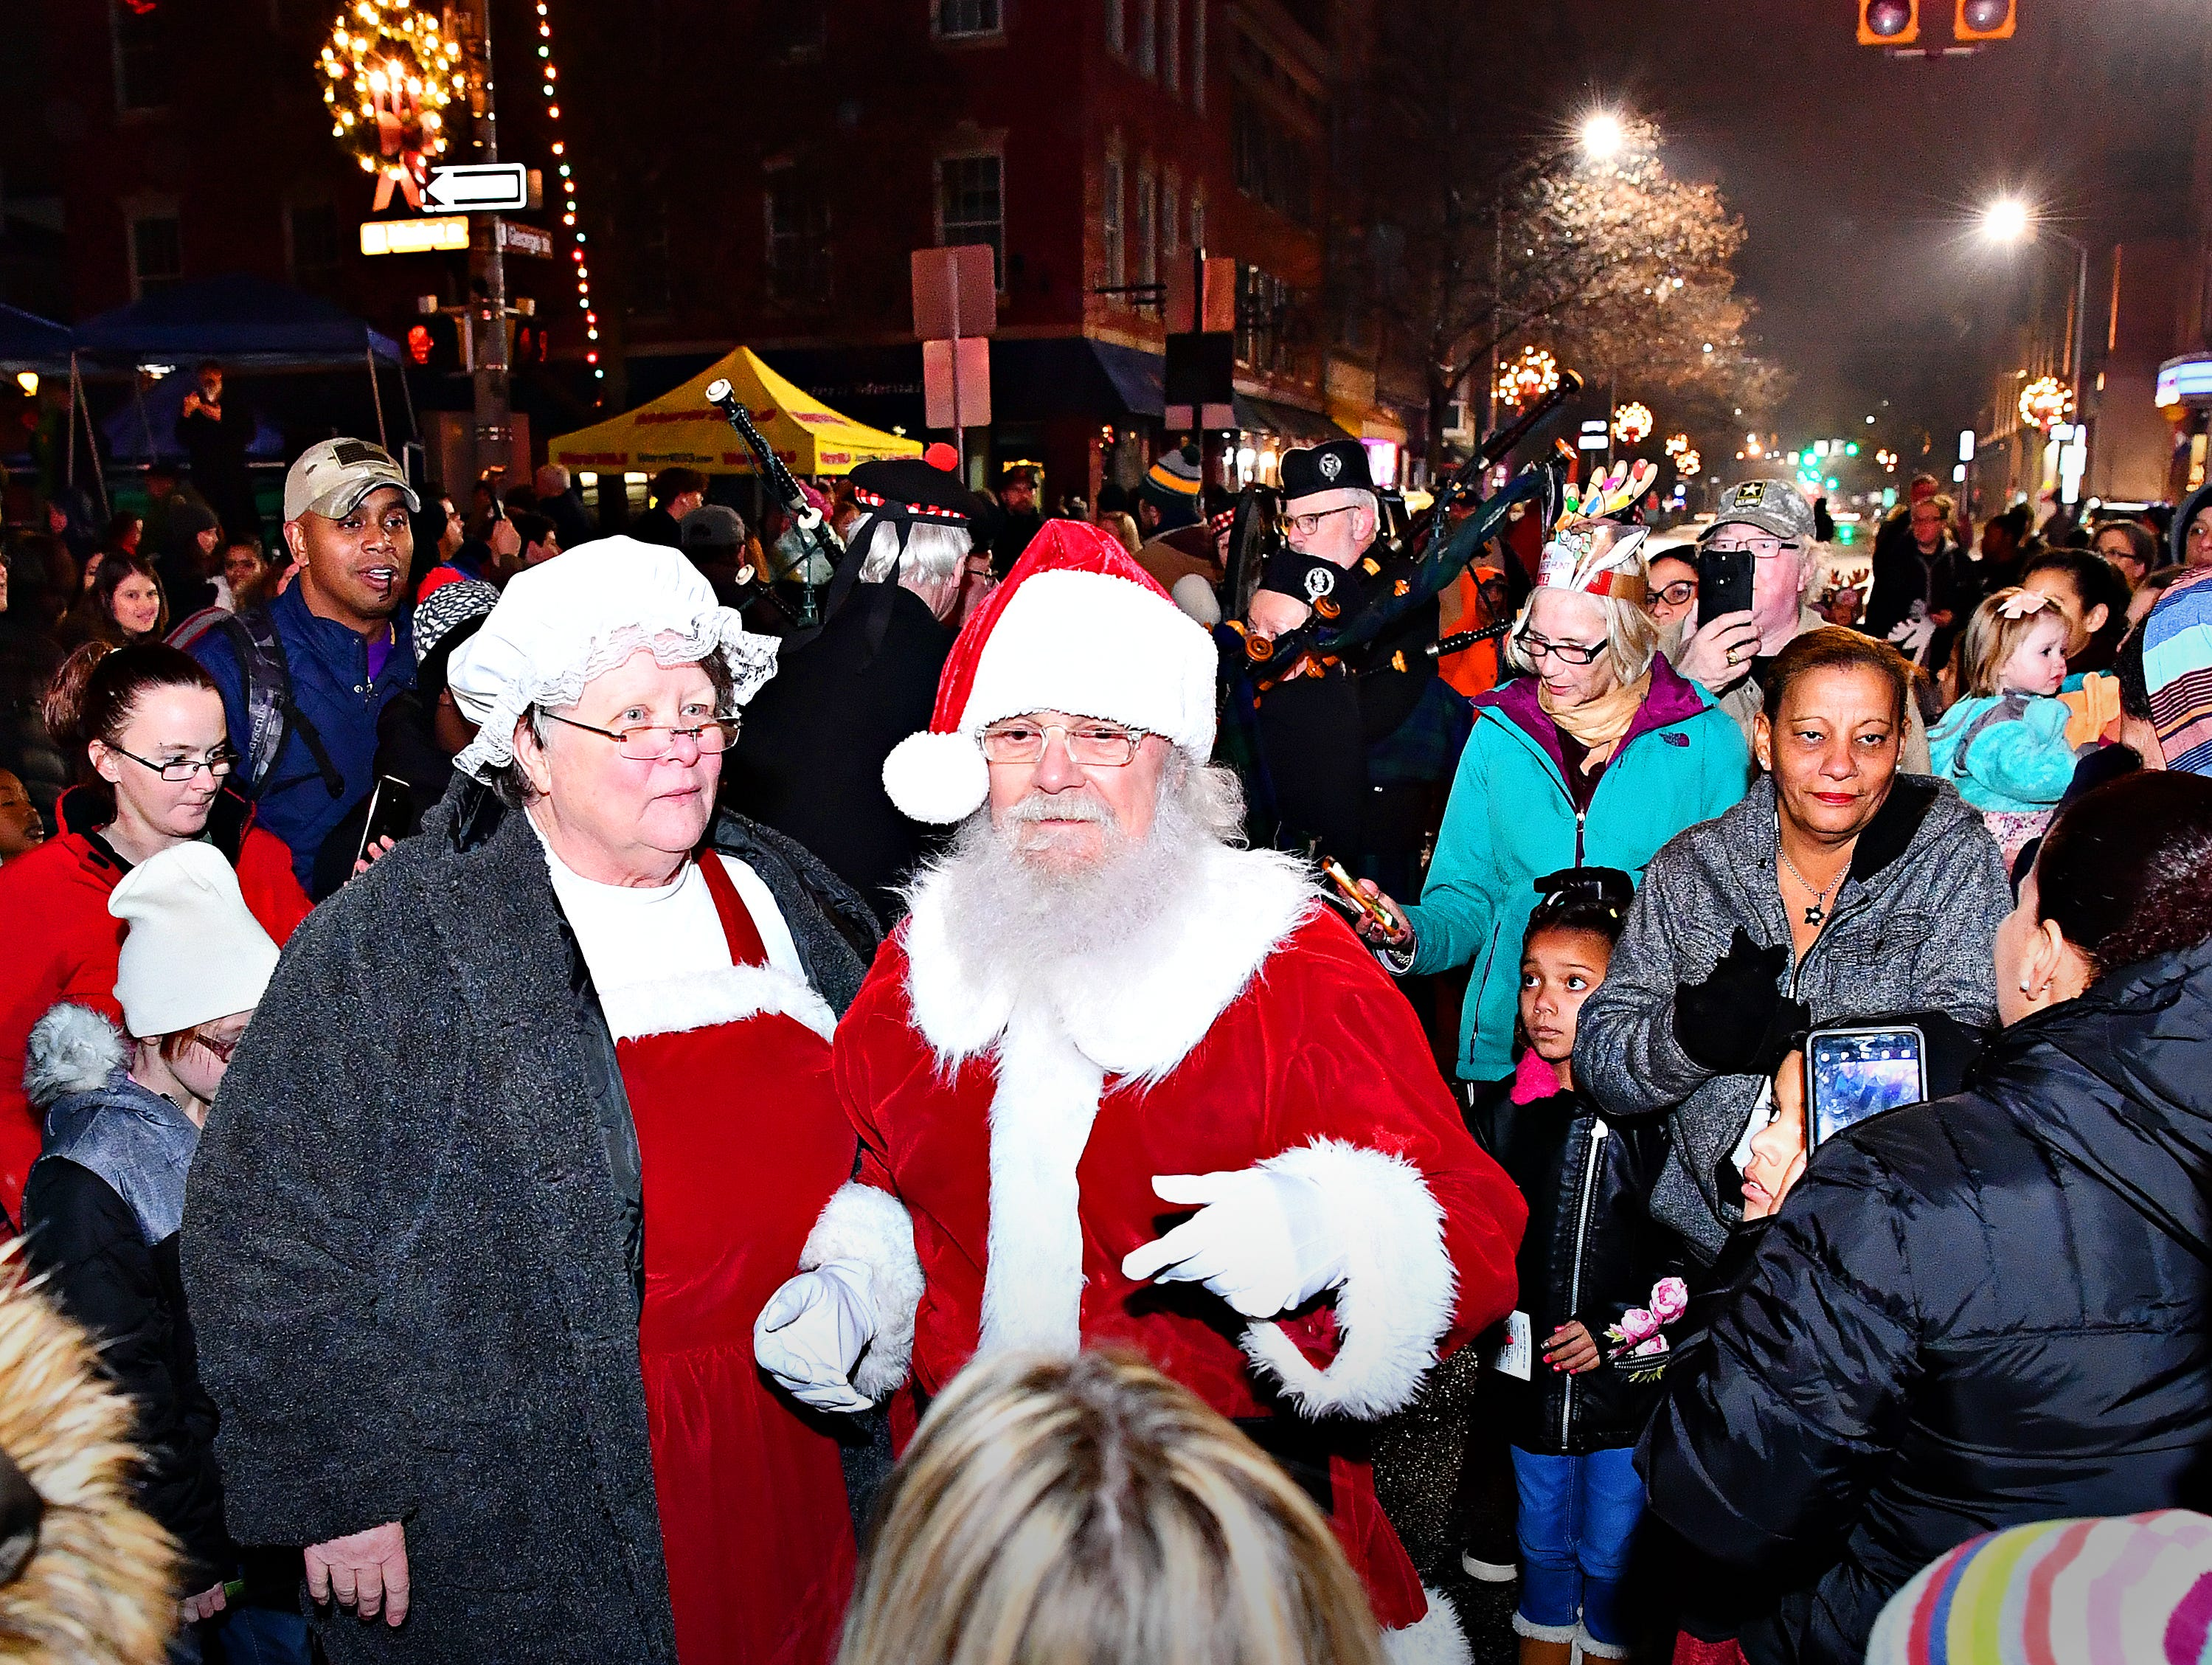 Santa, right, and Mrs. Claus arrive during Light Up York in York City, Saturday, Dec. 1, 2018. Dawn J. Sagert photo